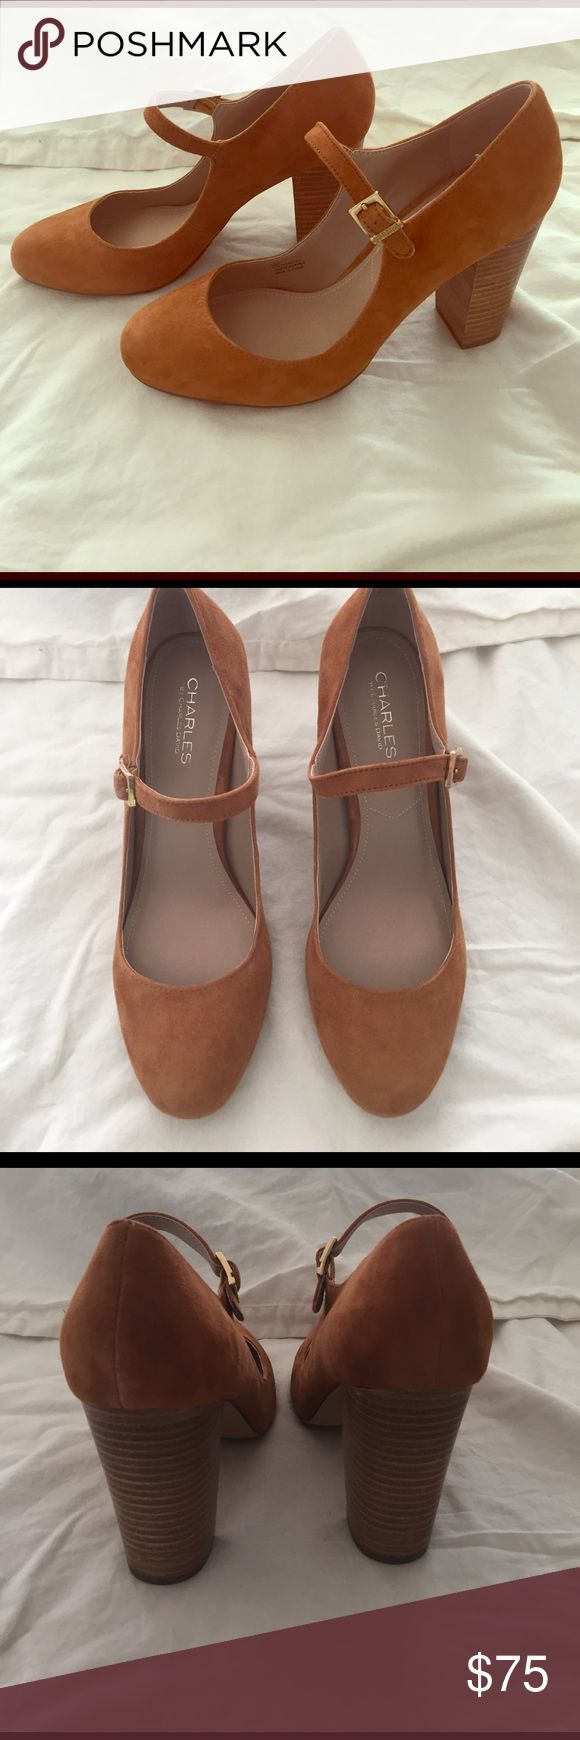 NEW Charles by Charles David camel suede heel brand-new, beautiful Charles by Charles David suede heels. The color is a gorgeous camel! Heel is 3 1/2 in tall. Retail for over $115!!! Charles David Shoes Heels